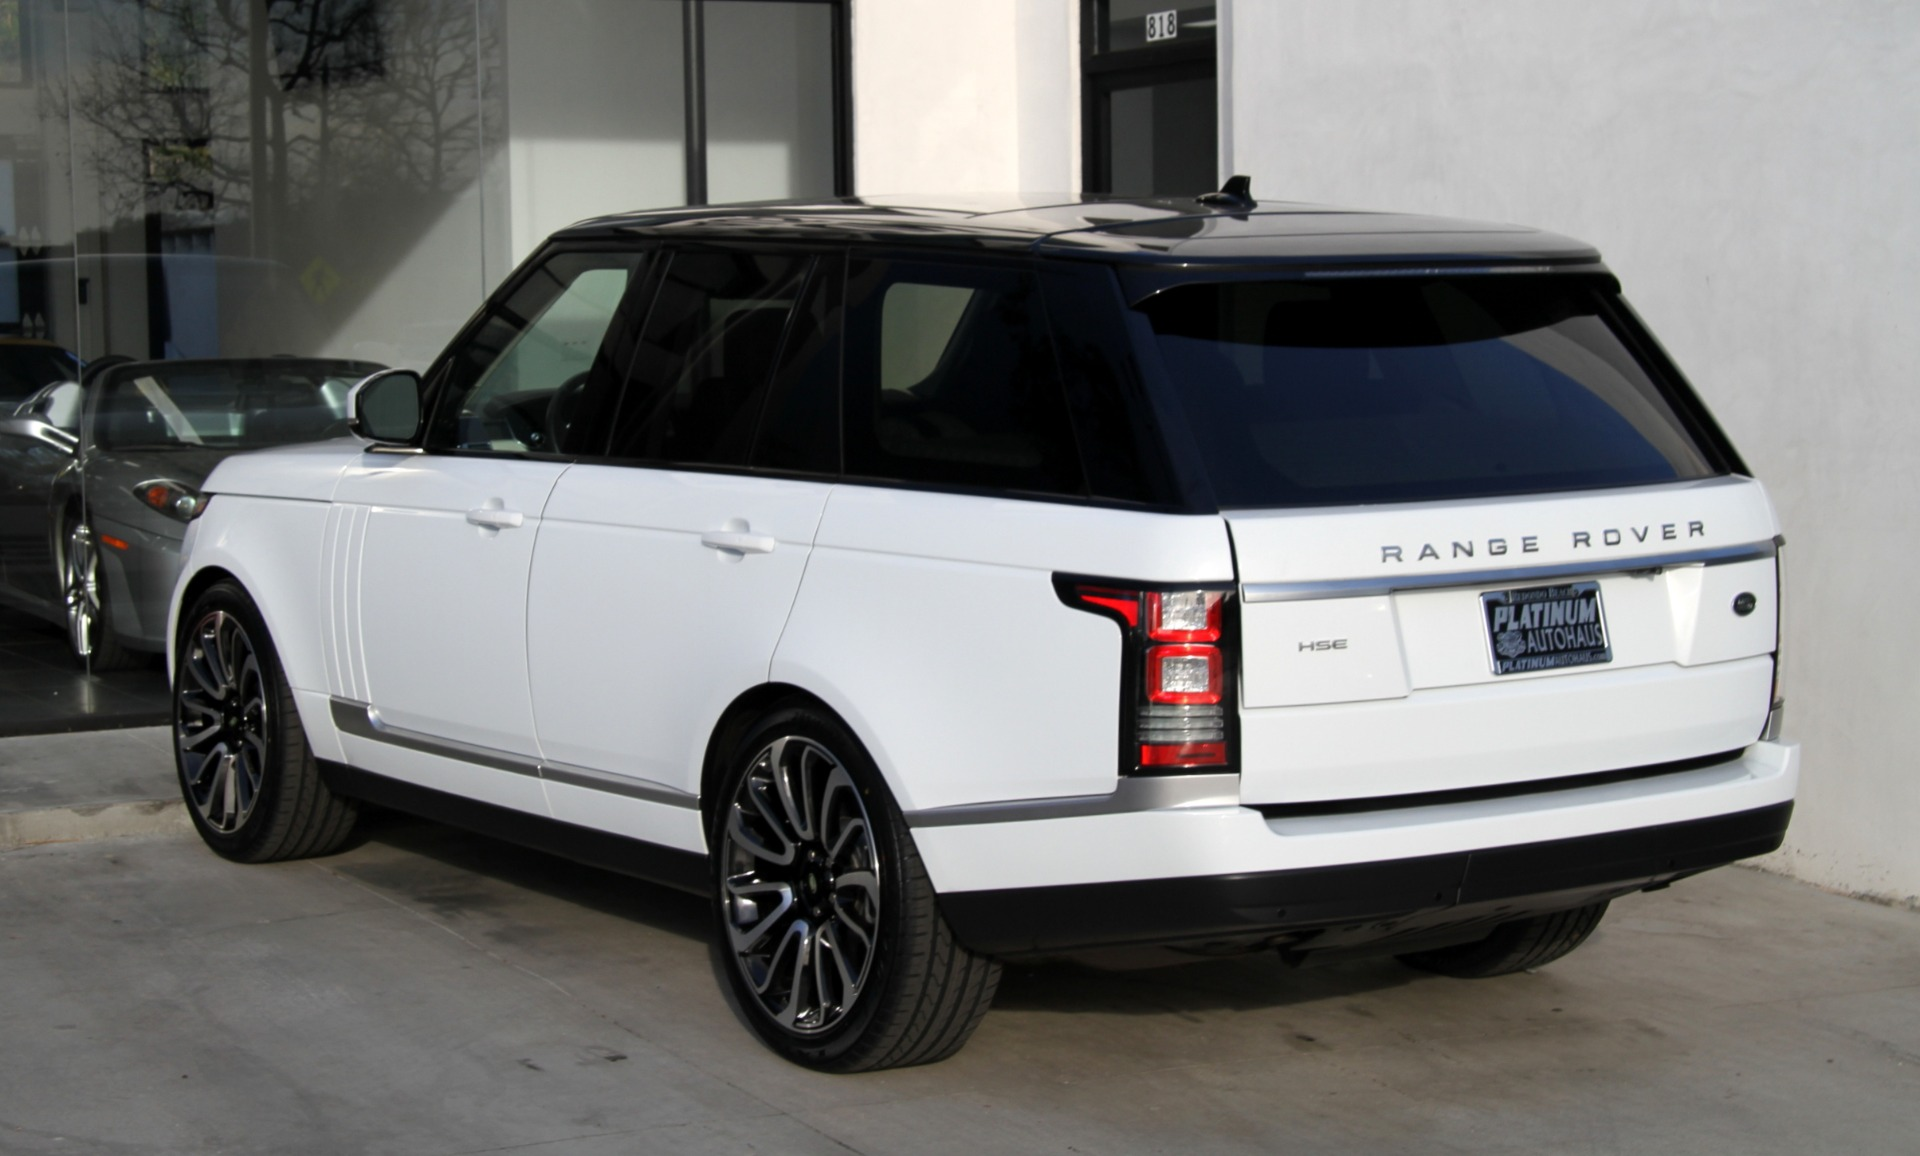 2016 land rover range rover hse stock 6092 for sale near redondo beach ca ca land rover dealer - Land rover garage near me ...